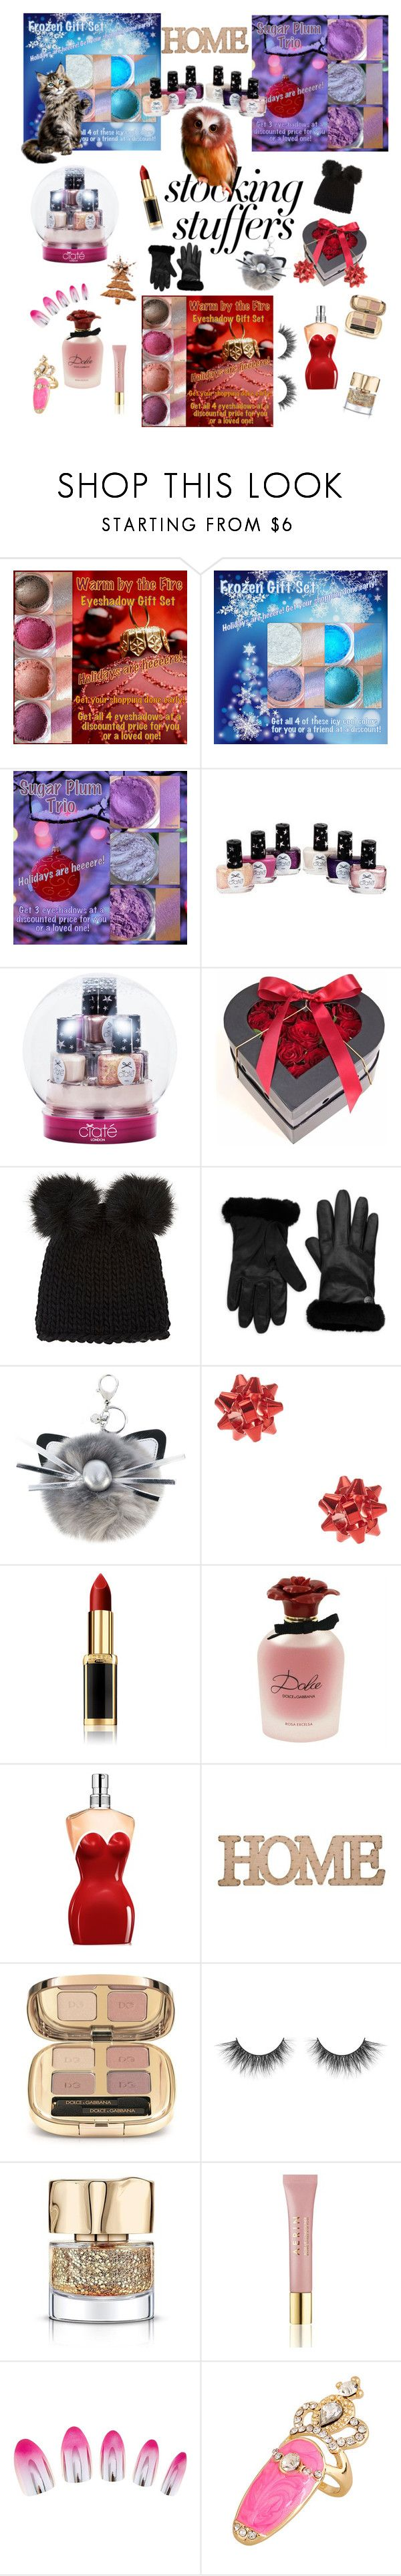 """""""#PolyPresents: Stocking Stuffers"""" by marina-hofman-mallander ❤ liked on Polyvore featuring beauty, Ciaté, Barneys New York, UGG, MARC CAIN, L'Oréal Paris, Dolce&Gabbana, Jean-Paul Gaultier, Home Essentials and AERIN"""